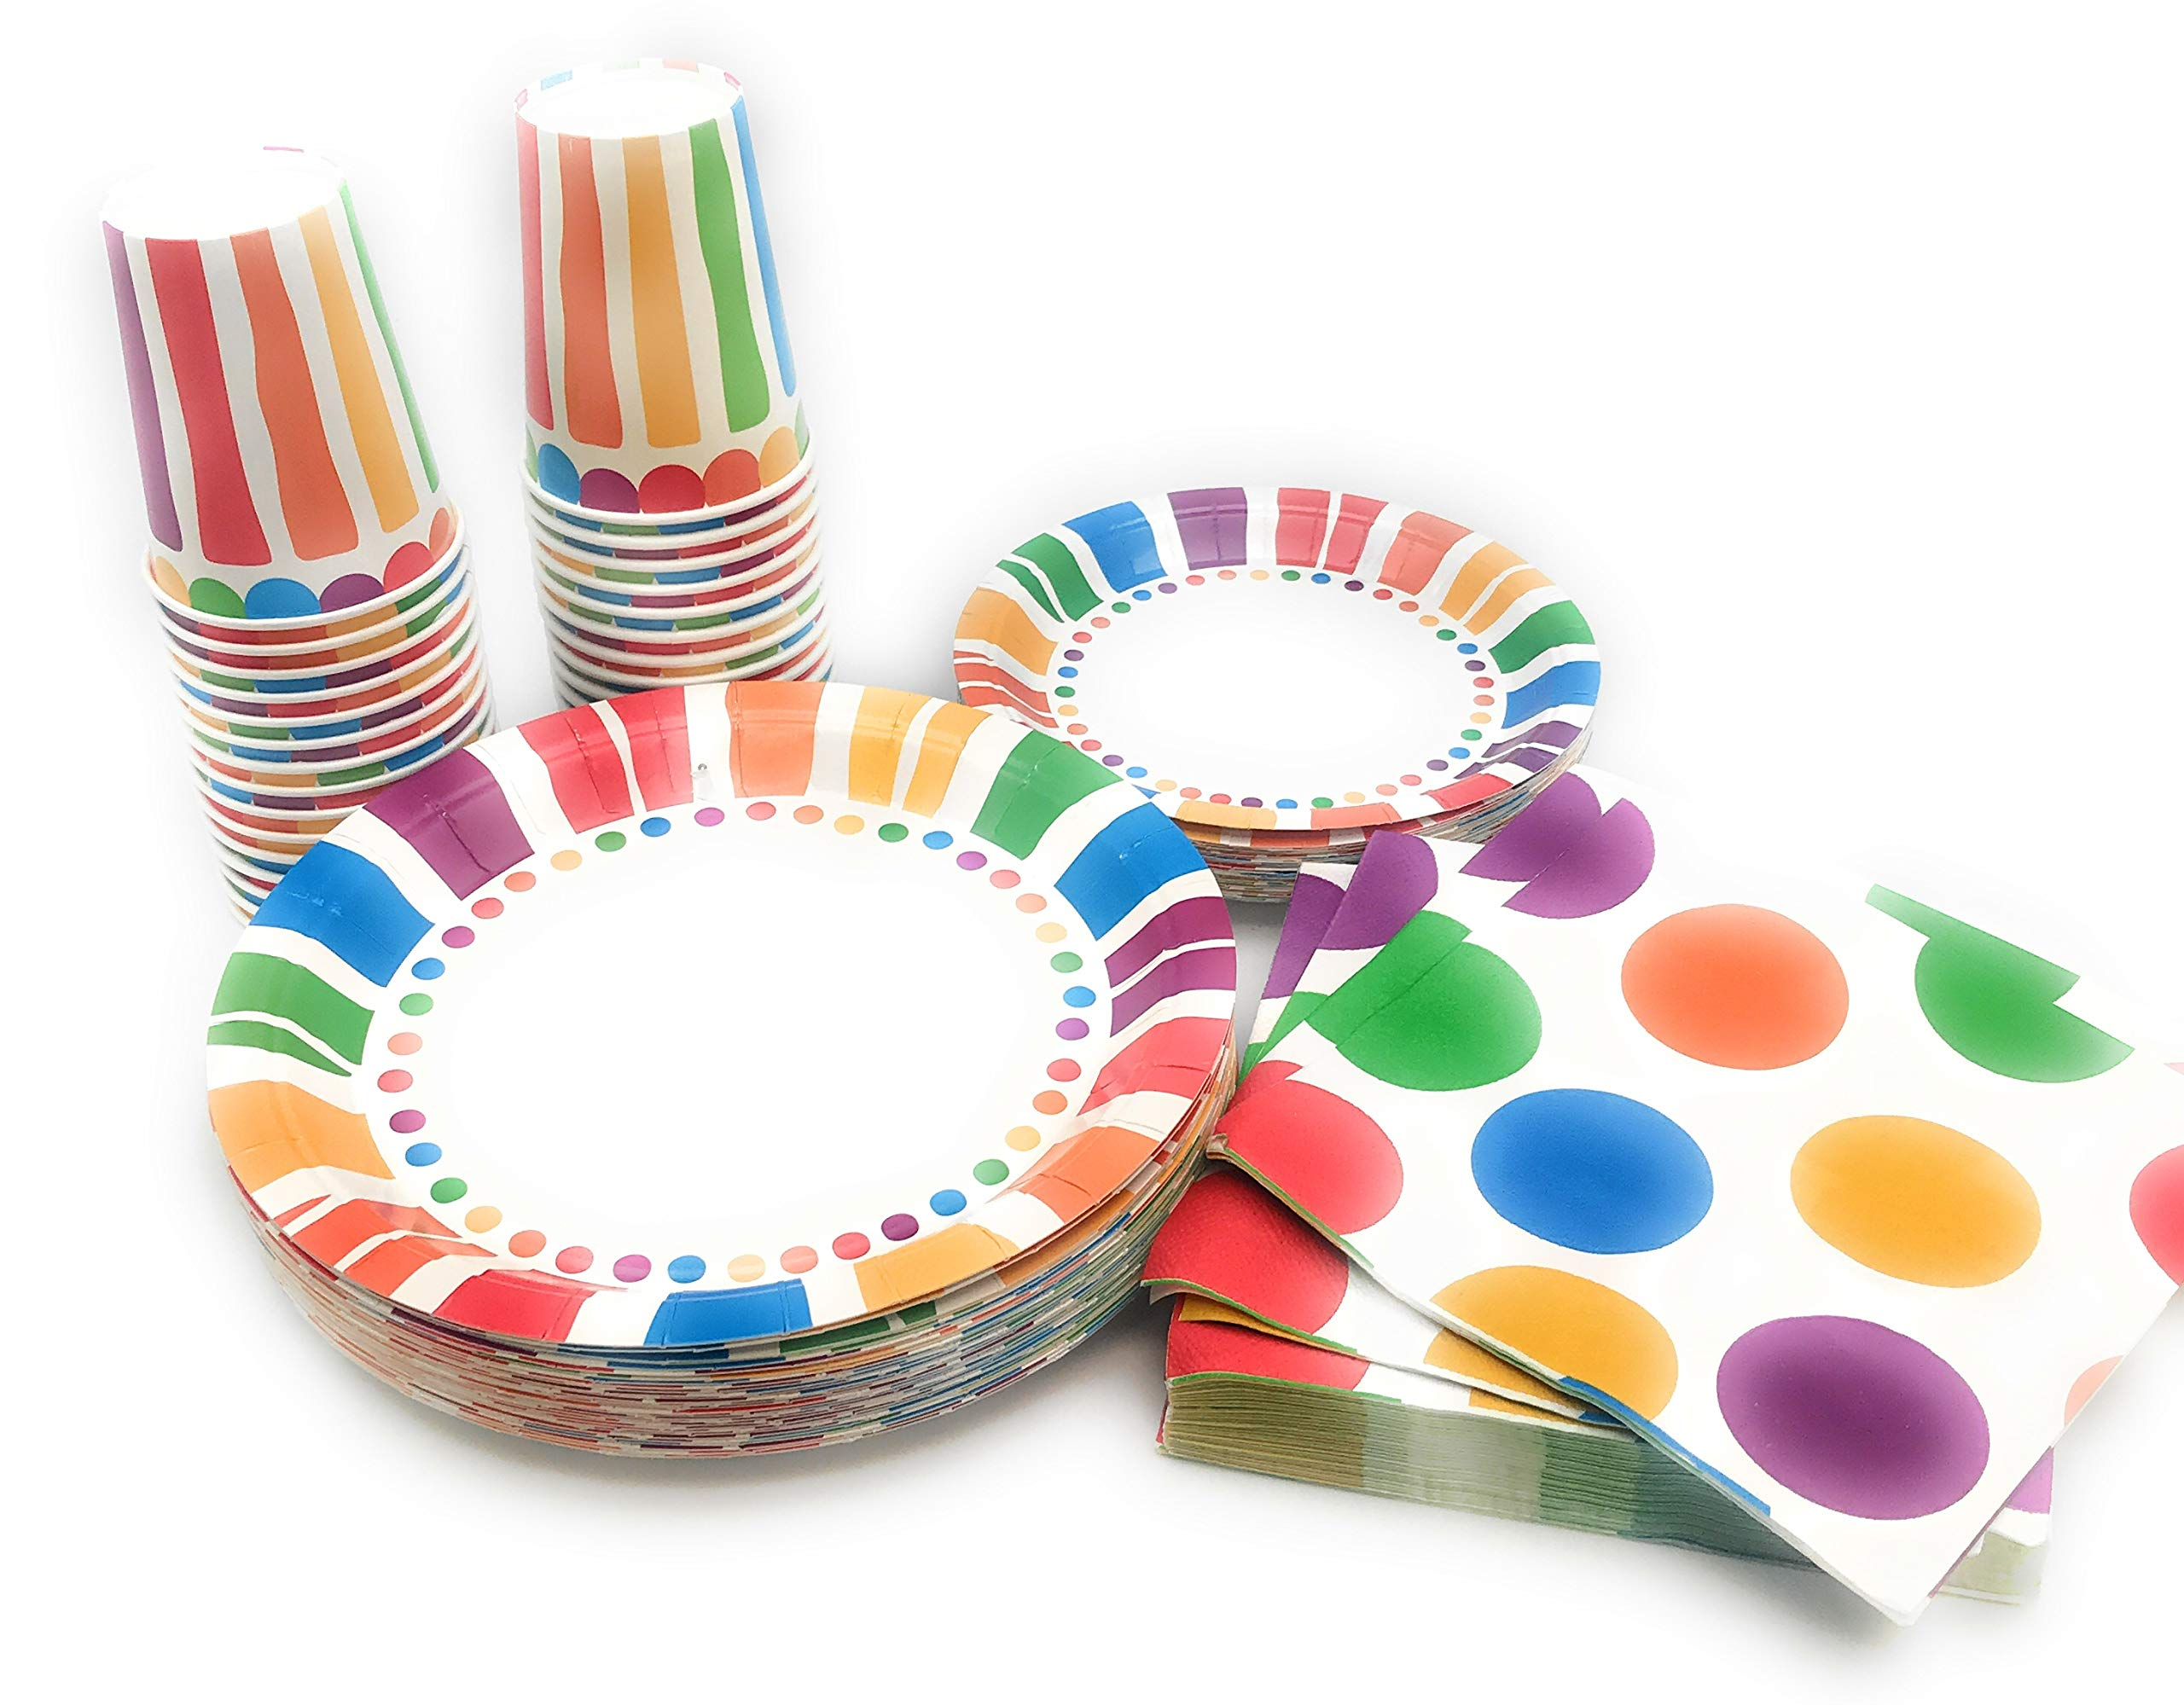 Serves 30 Rainbow Party Pack | 30 cups 9 oz | 30 Dessert Plates 7'' | 30 Dinner Plates 9'' | 30 Napkins | Serves 30 by Oojami (Image #3)